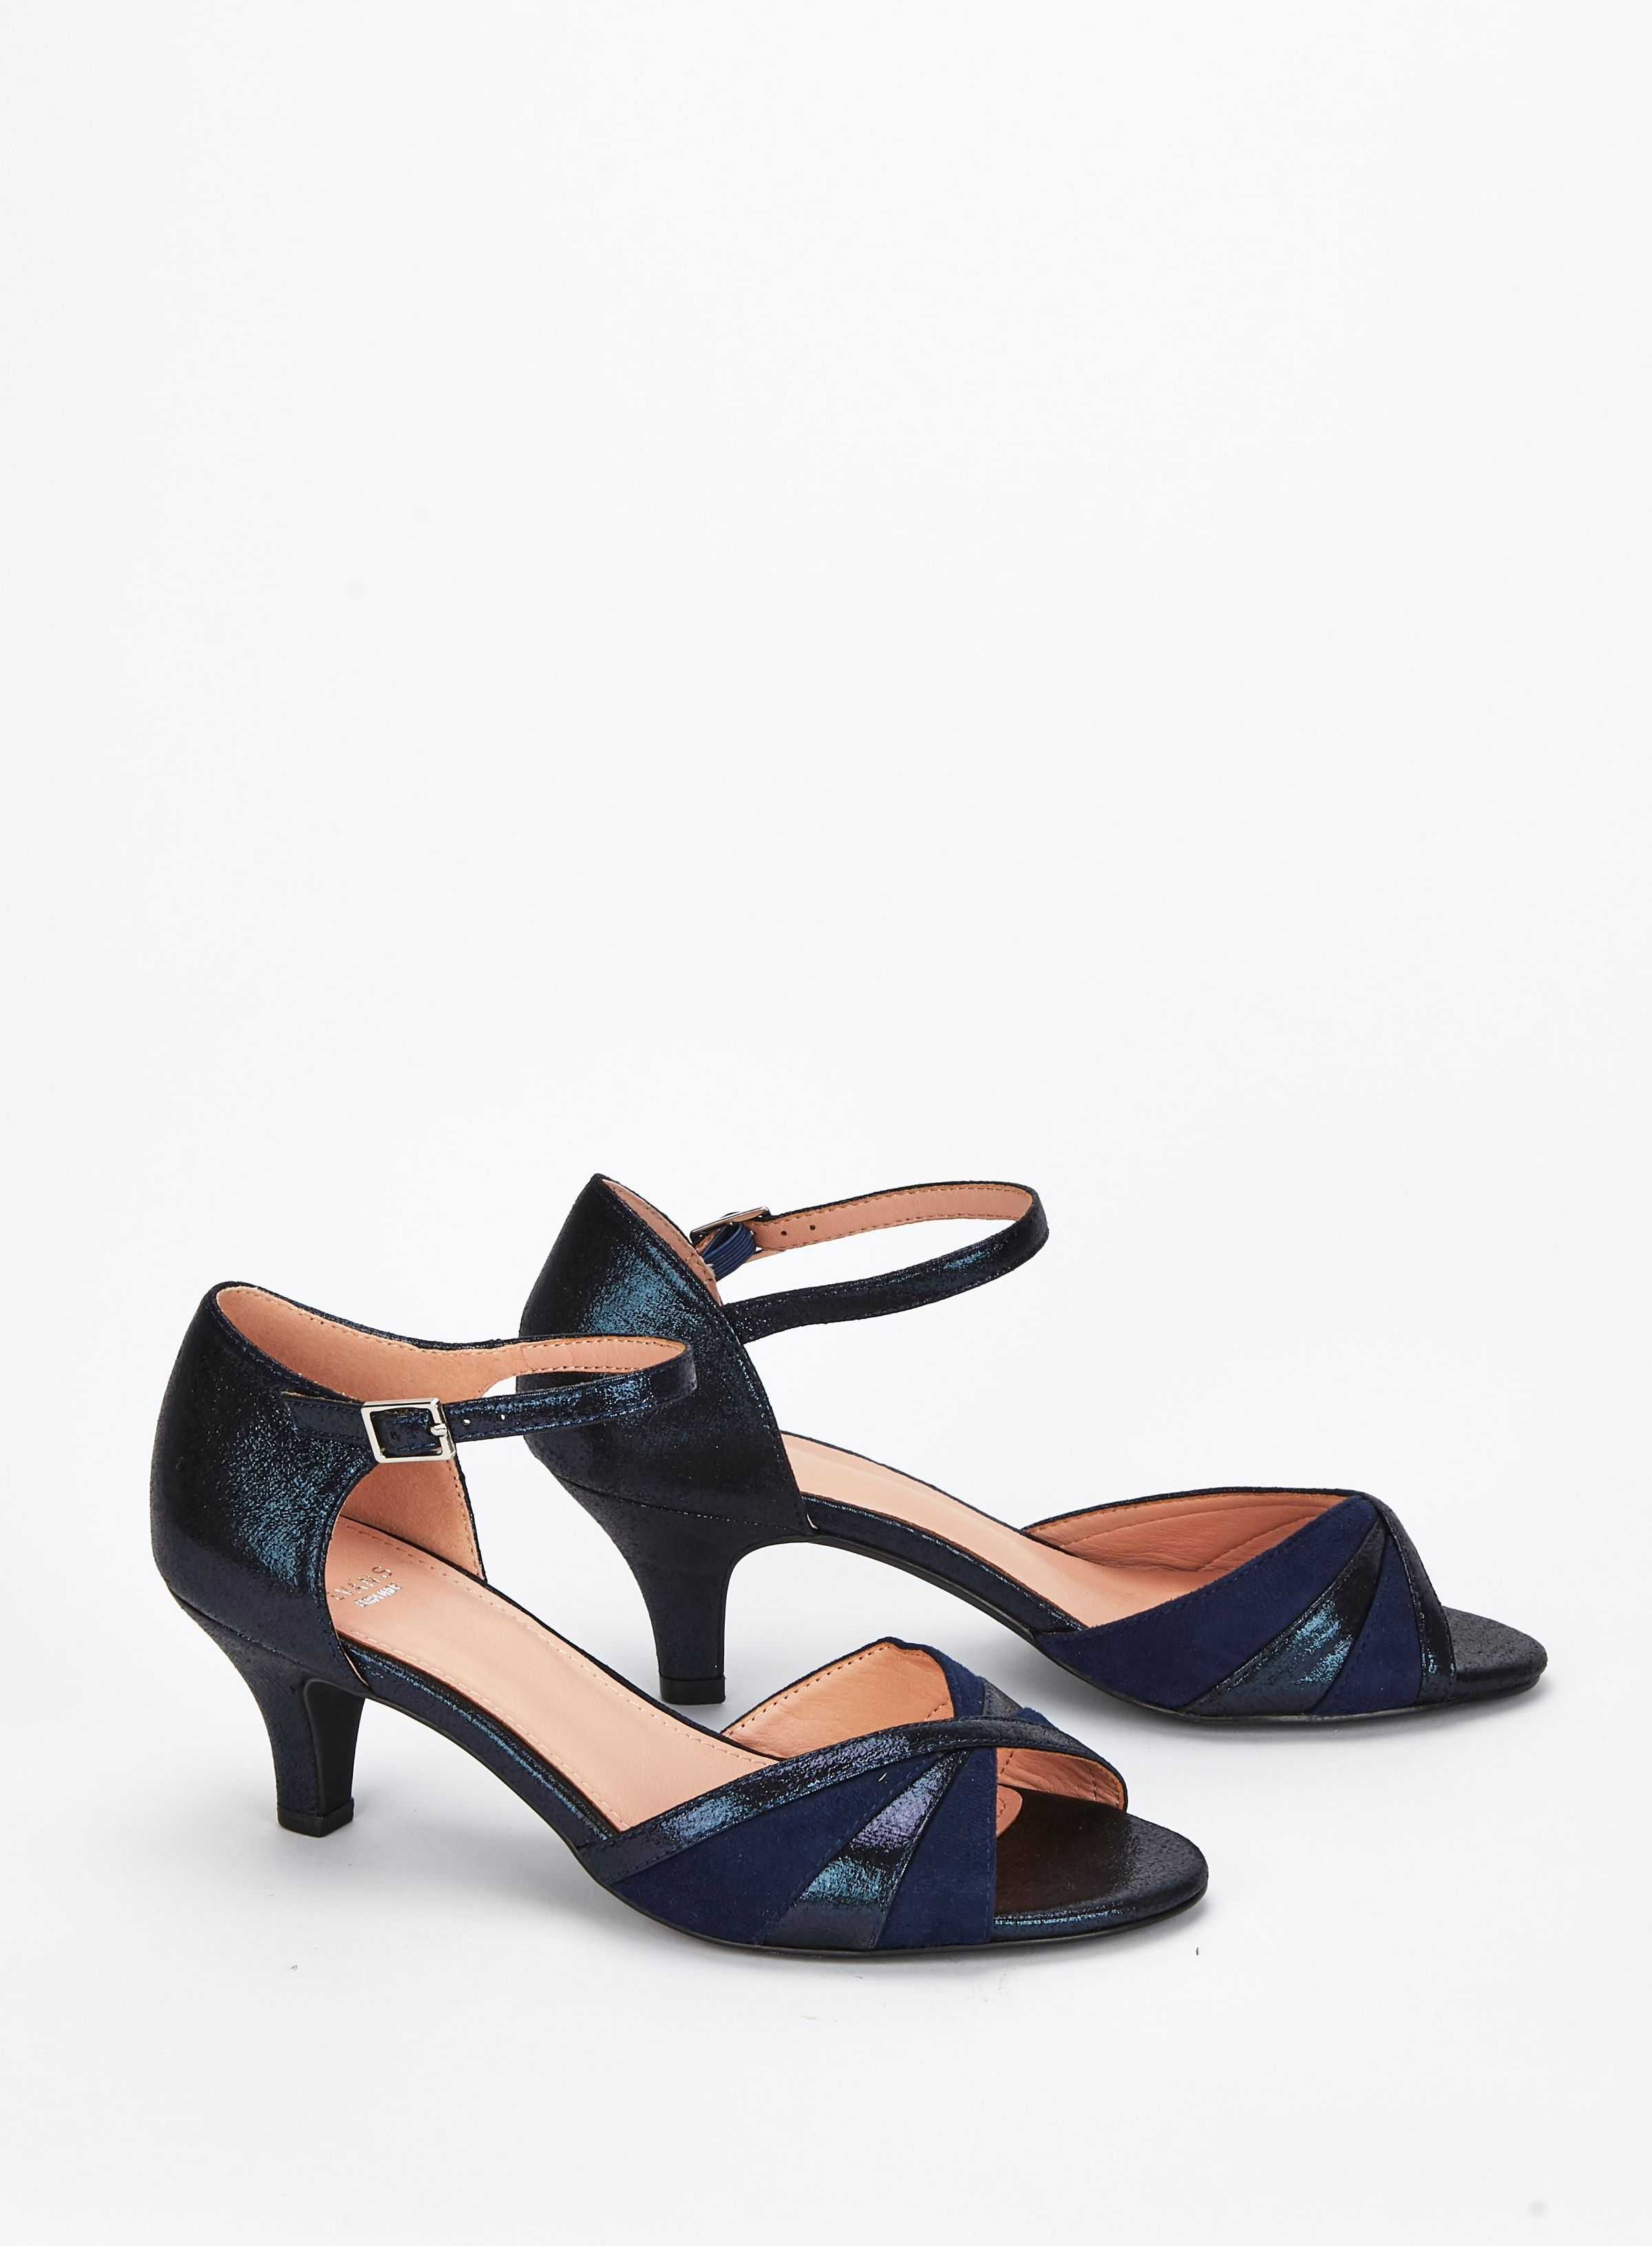 b2fb96a5bb8a9 EXTRA WIDE FIT Navy Blue Peep Toe Heel Sandals | Wedding outfit ...